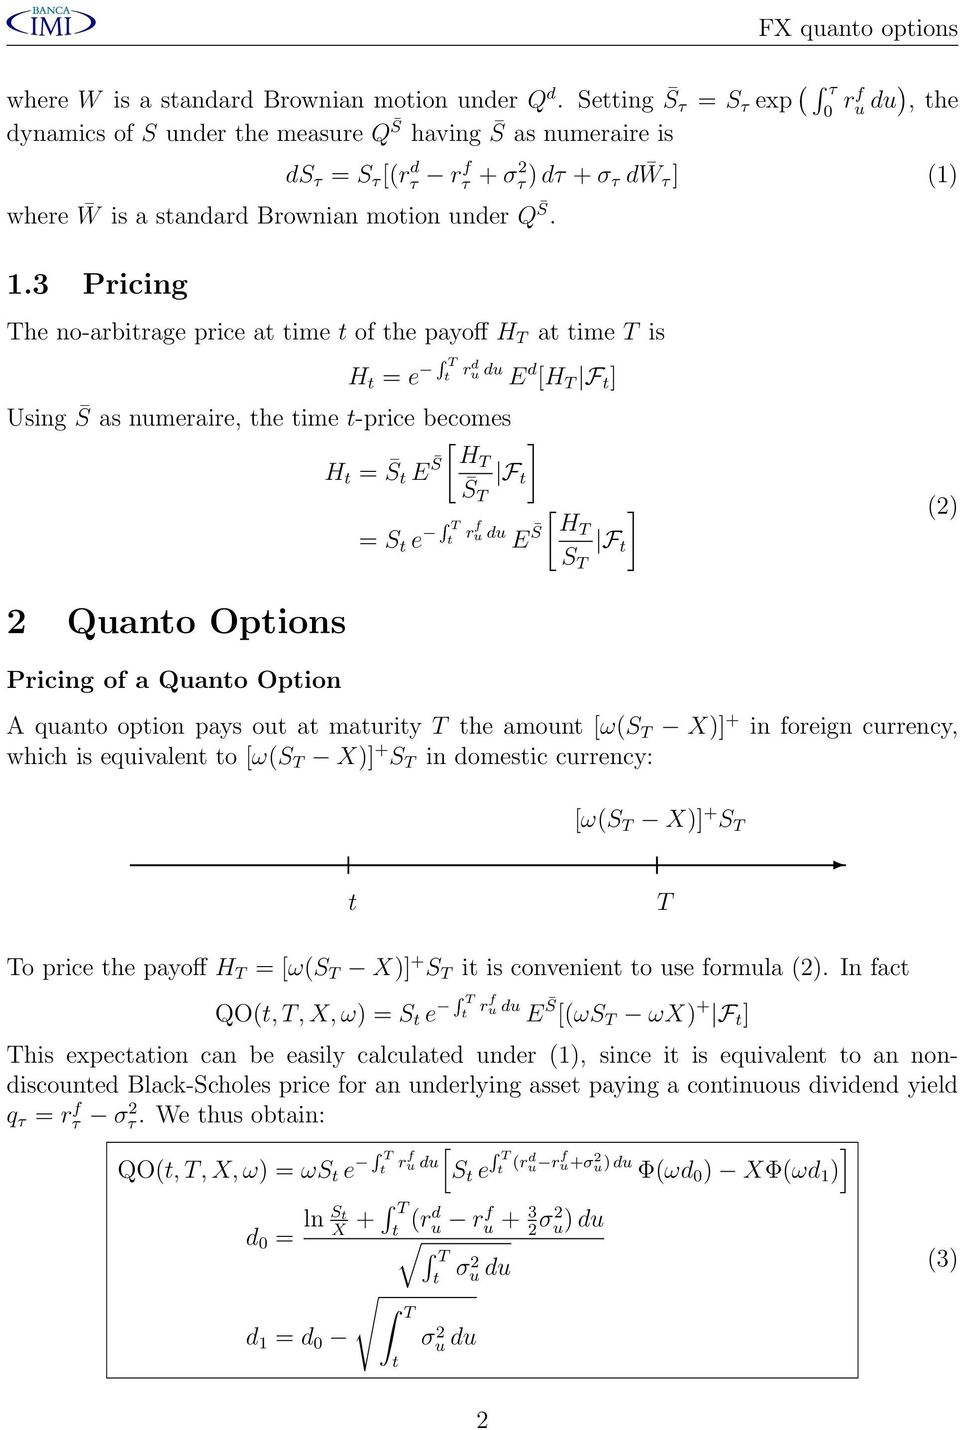 3 Pricing The no-arbirage price a ime of he payoff H T a ime T is H = e RT r d u du E d [H T F Using S as numeraire, he ime -price becomes [ H = S E S HT F S T 2 Quano Opions Pricing of a Quano Opion